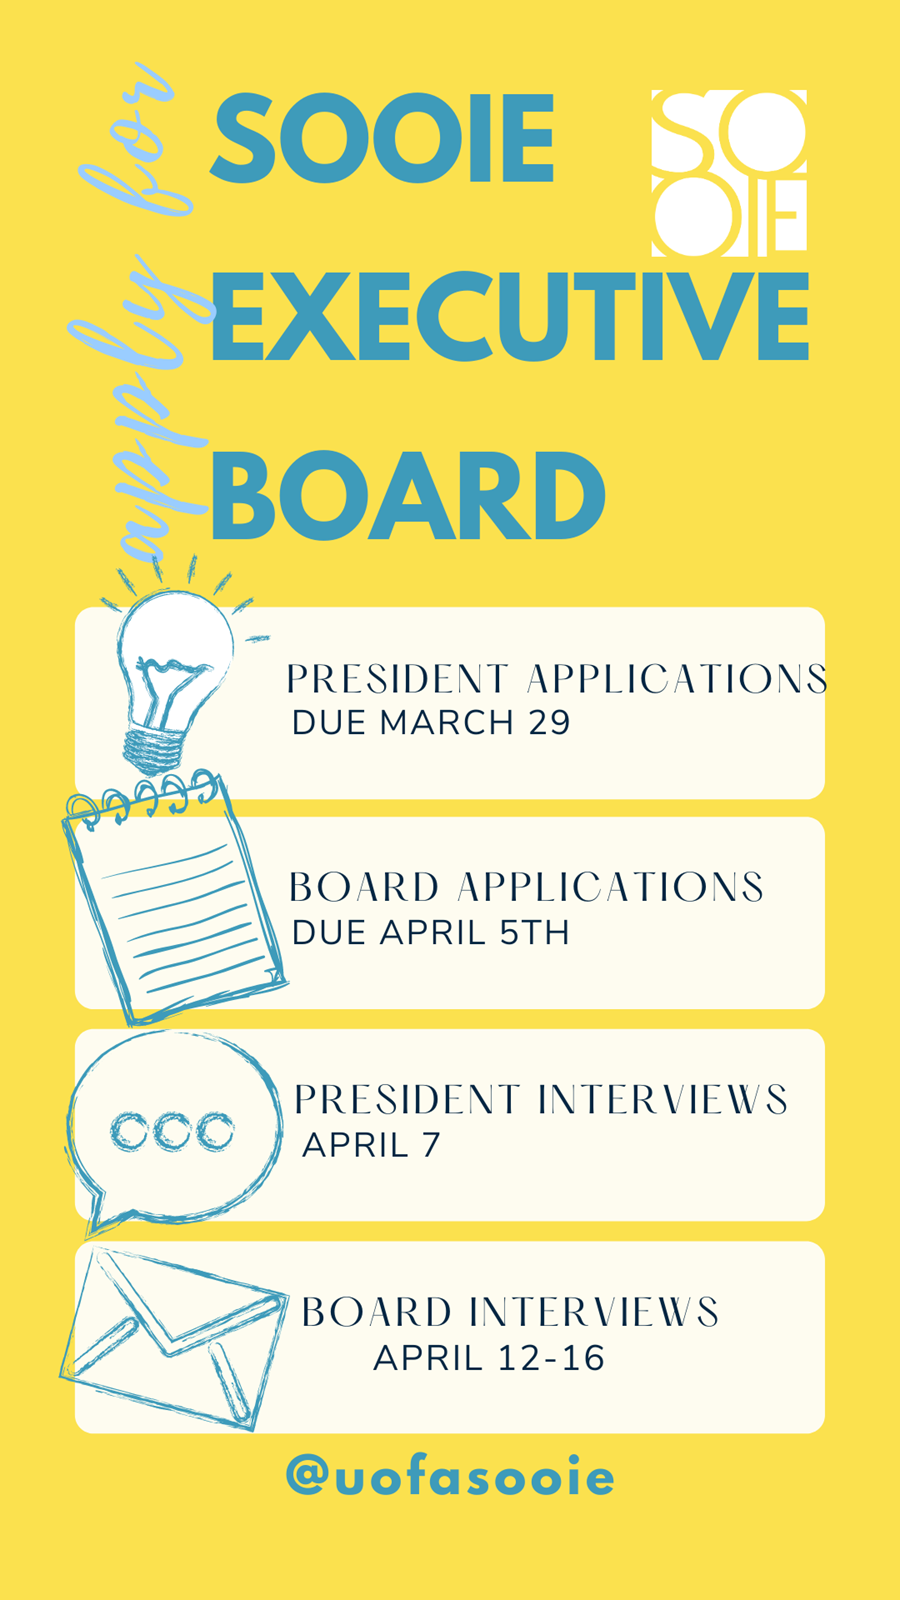 SOOIE 2021 22 Executive Board Applications Now Available